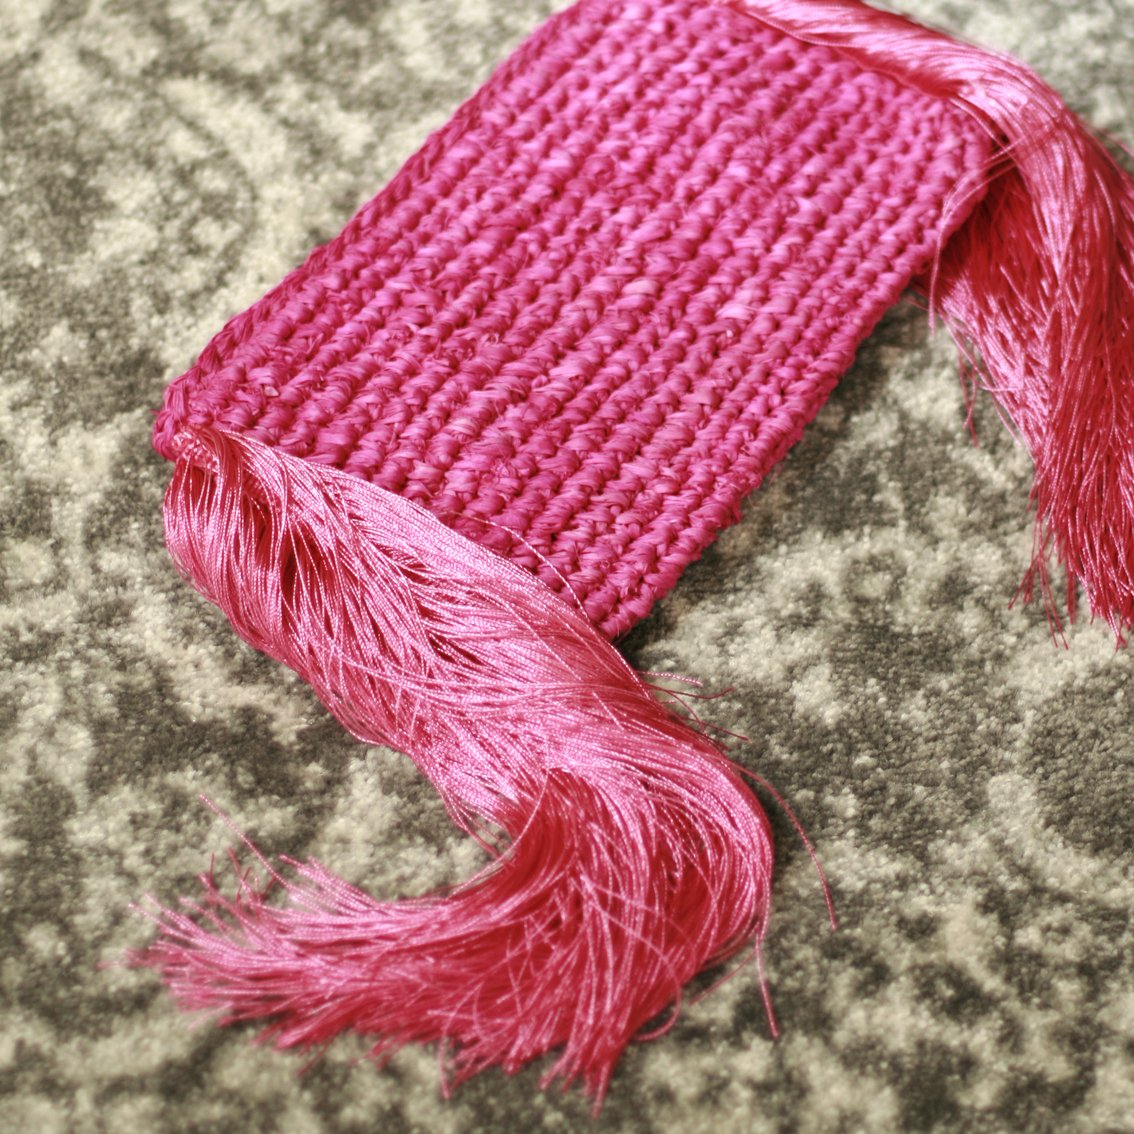 Canggu Fringe Raffia Straw Clutch Dragon Fruit Pink